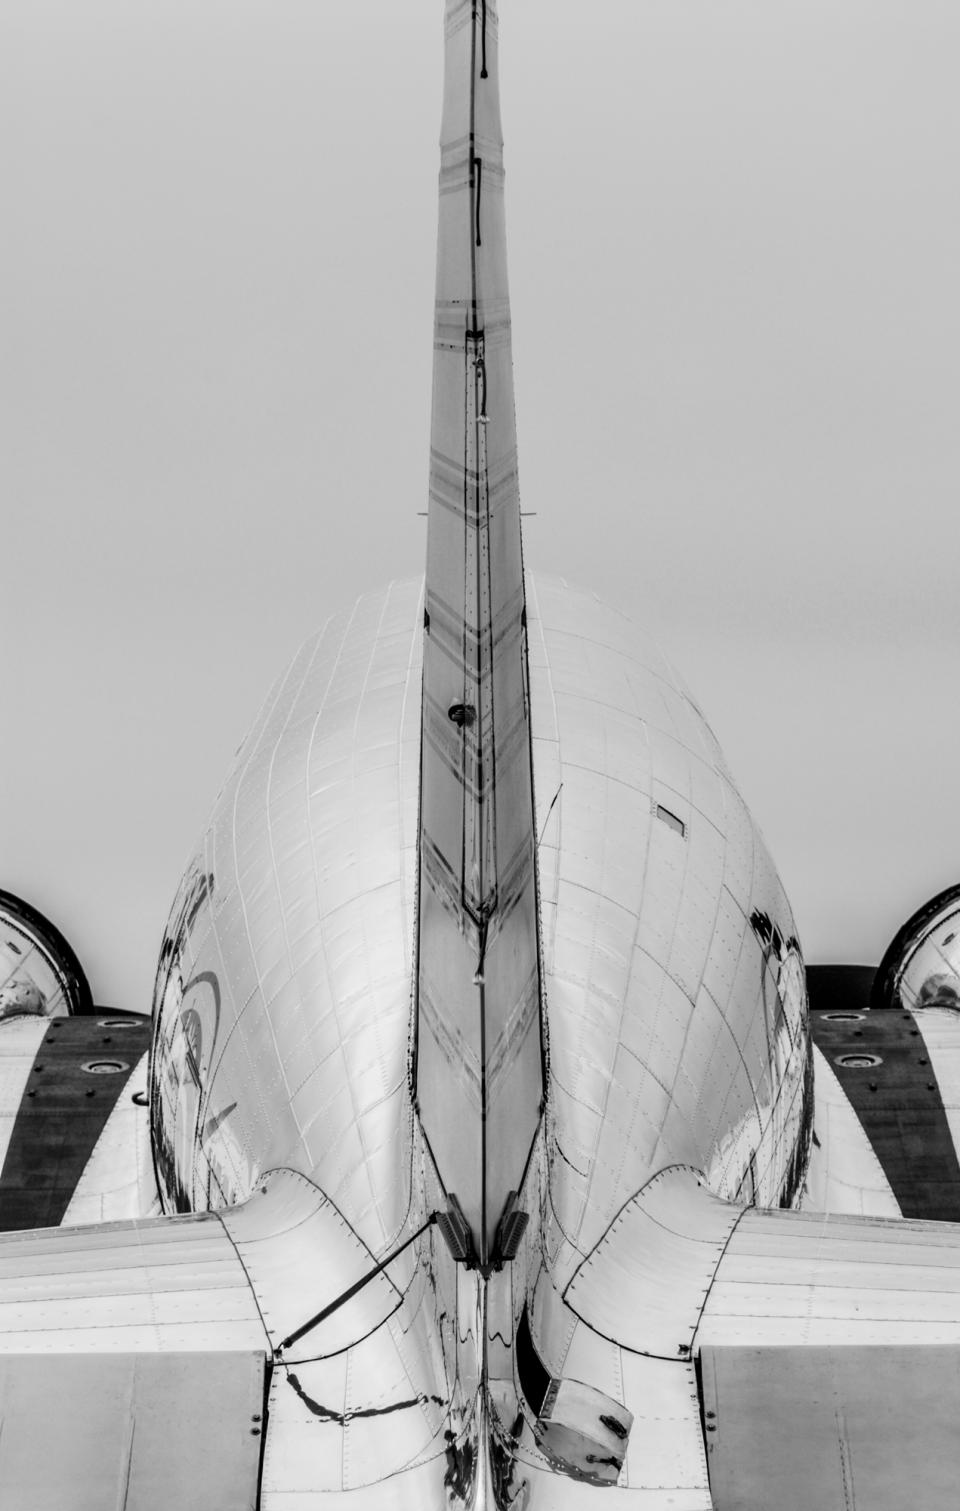 More than shape, this Douglas DC-3 has form. A beautiful form.